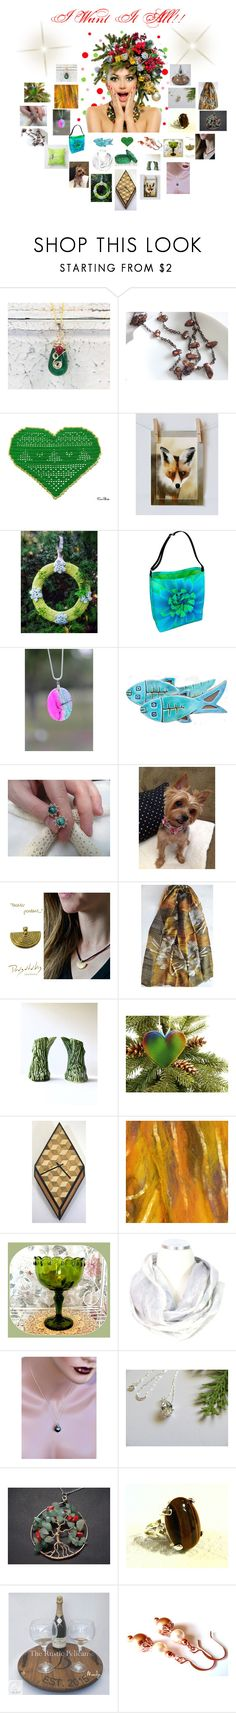 """""""I want it All !!!"""" by zebacreations ❤ liked on Polyvore"""